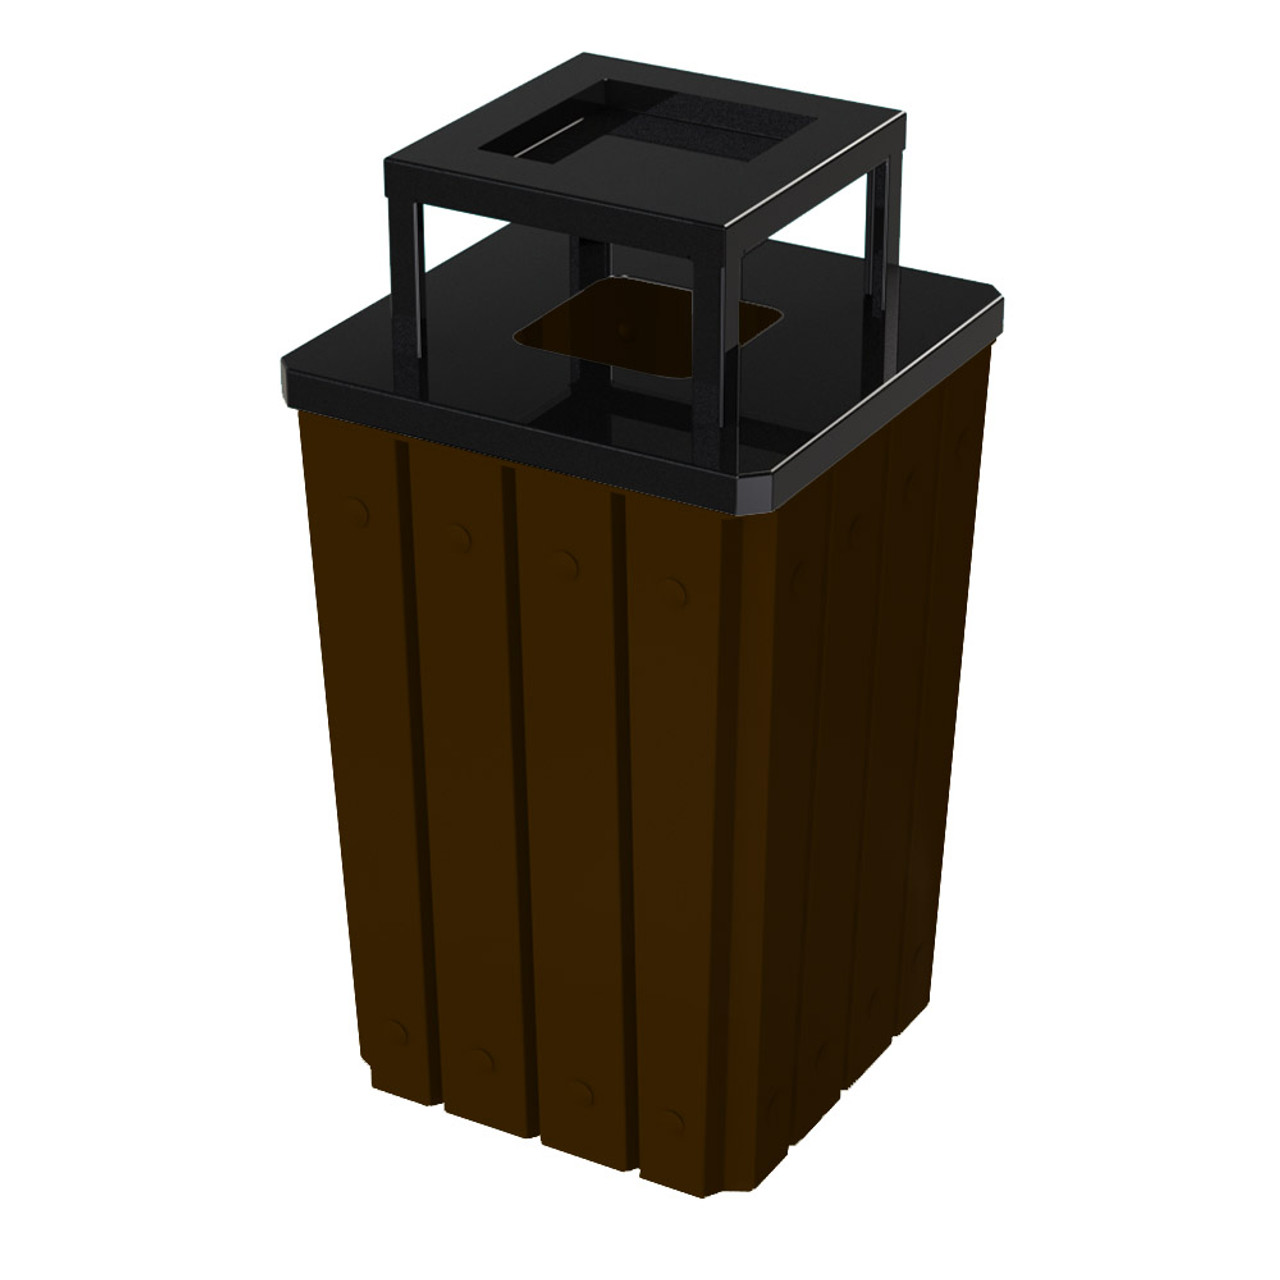 32 Gallon Heavy Duty Brown Ash Trash Can with Liner S8295S-00-073